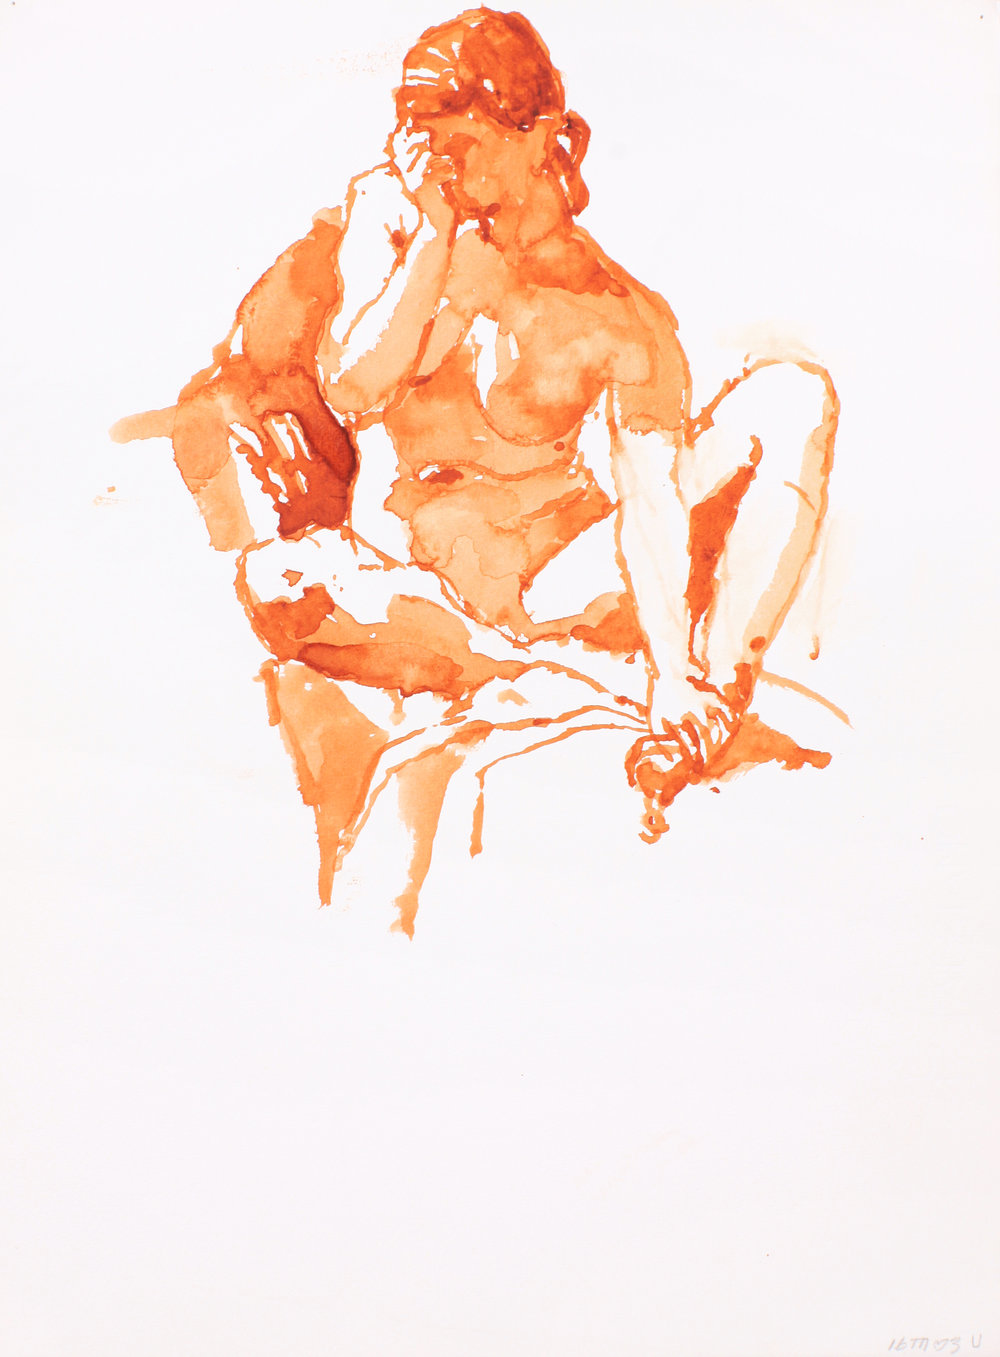 2003_Seated_Nude_with_Crossed_Splayed_Legs_and_Left_Hand_to_Head_watercolour_on_paper_15x11in_WPF232.jpg